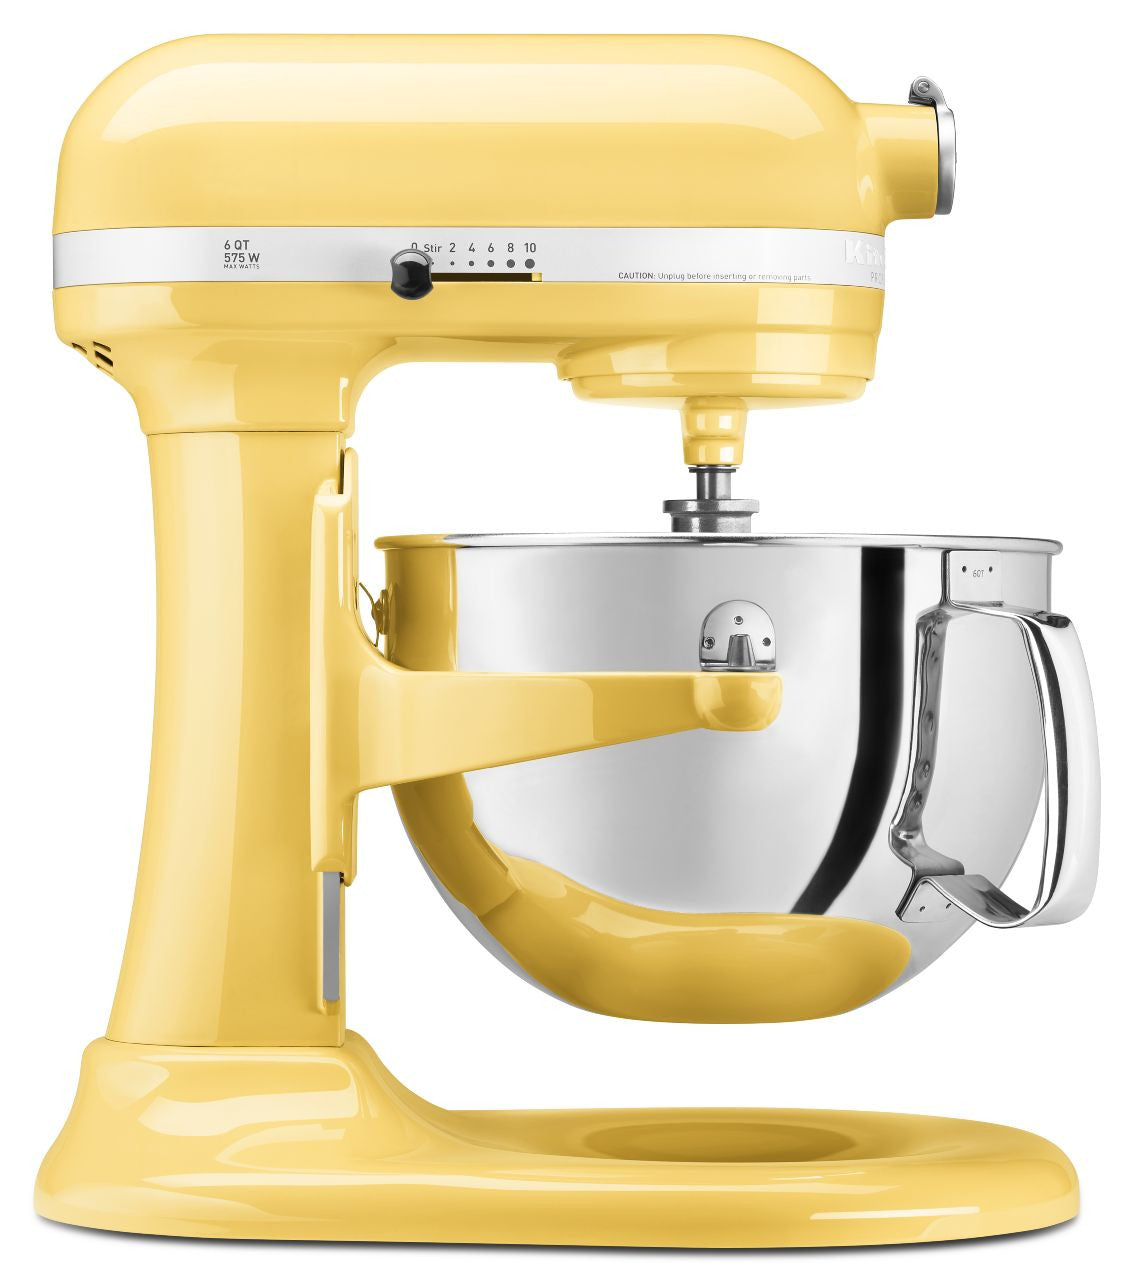 Kitchenaid 6 Qt. Professional 600 Series with Pouring Shield - Majestic Yellow KP26M1XMY